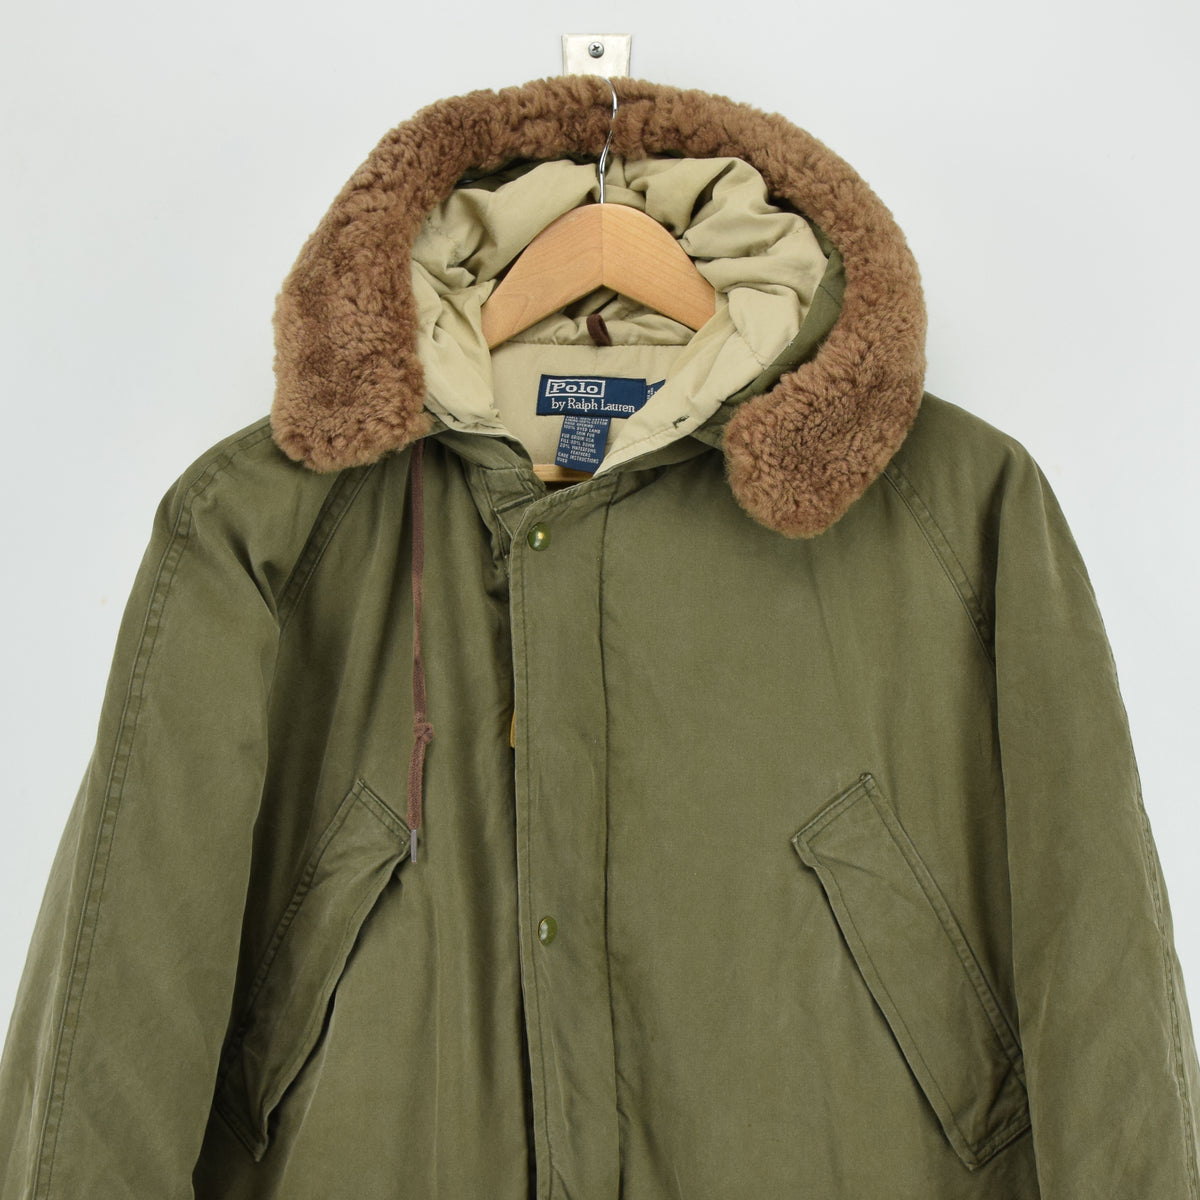 Ralph Lauren Polo Military Style Green Down Parka Jacket Shearling Trim Hood M chest